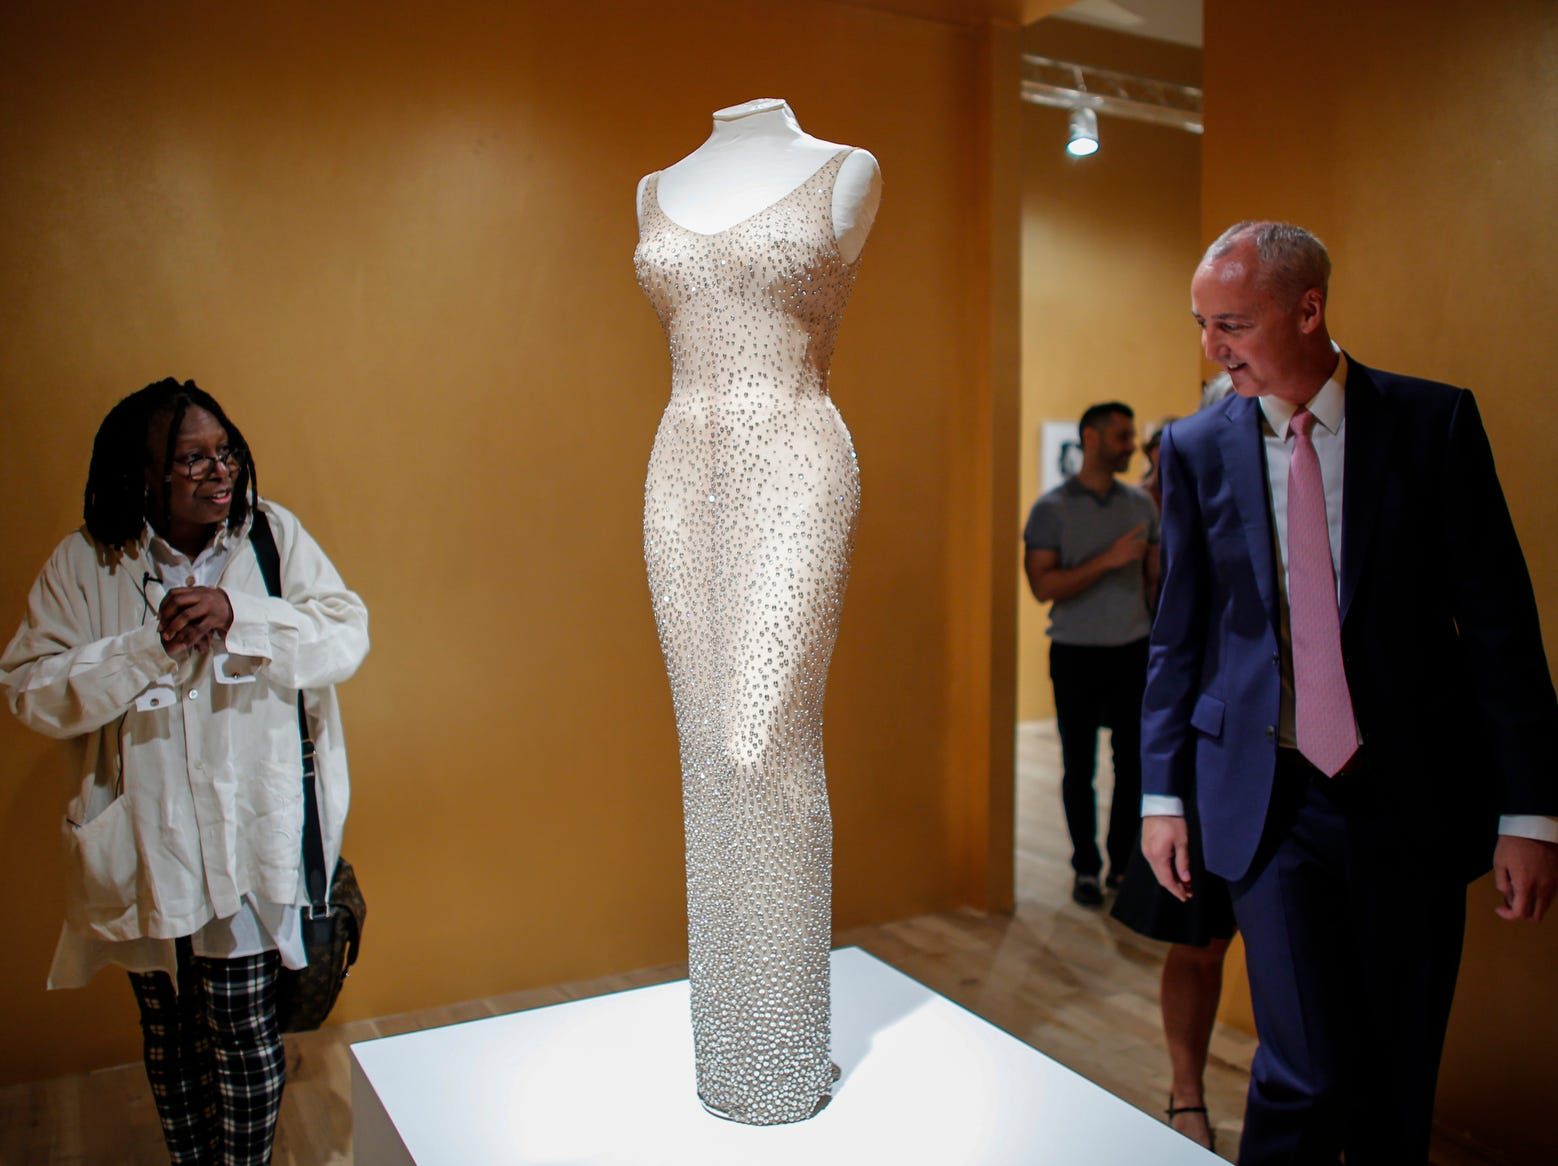 Whoopi Goldberg and Martin Nolan, Executive Director of Julien's Auctions speak next to the Marilyn Monroe iconic 'Happy Birthday Mr. President' dress during a press preview at MANA Contemporary Museum in Jersey City, N.J.